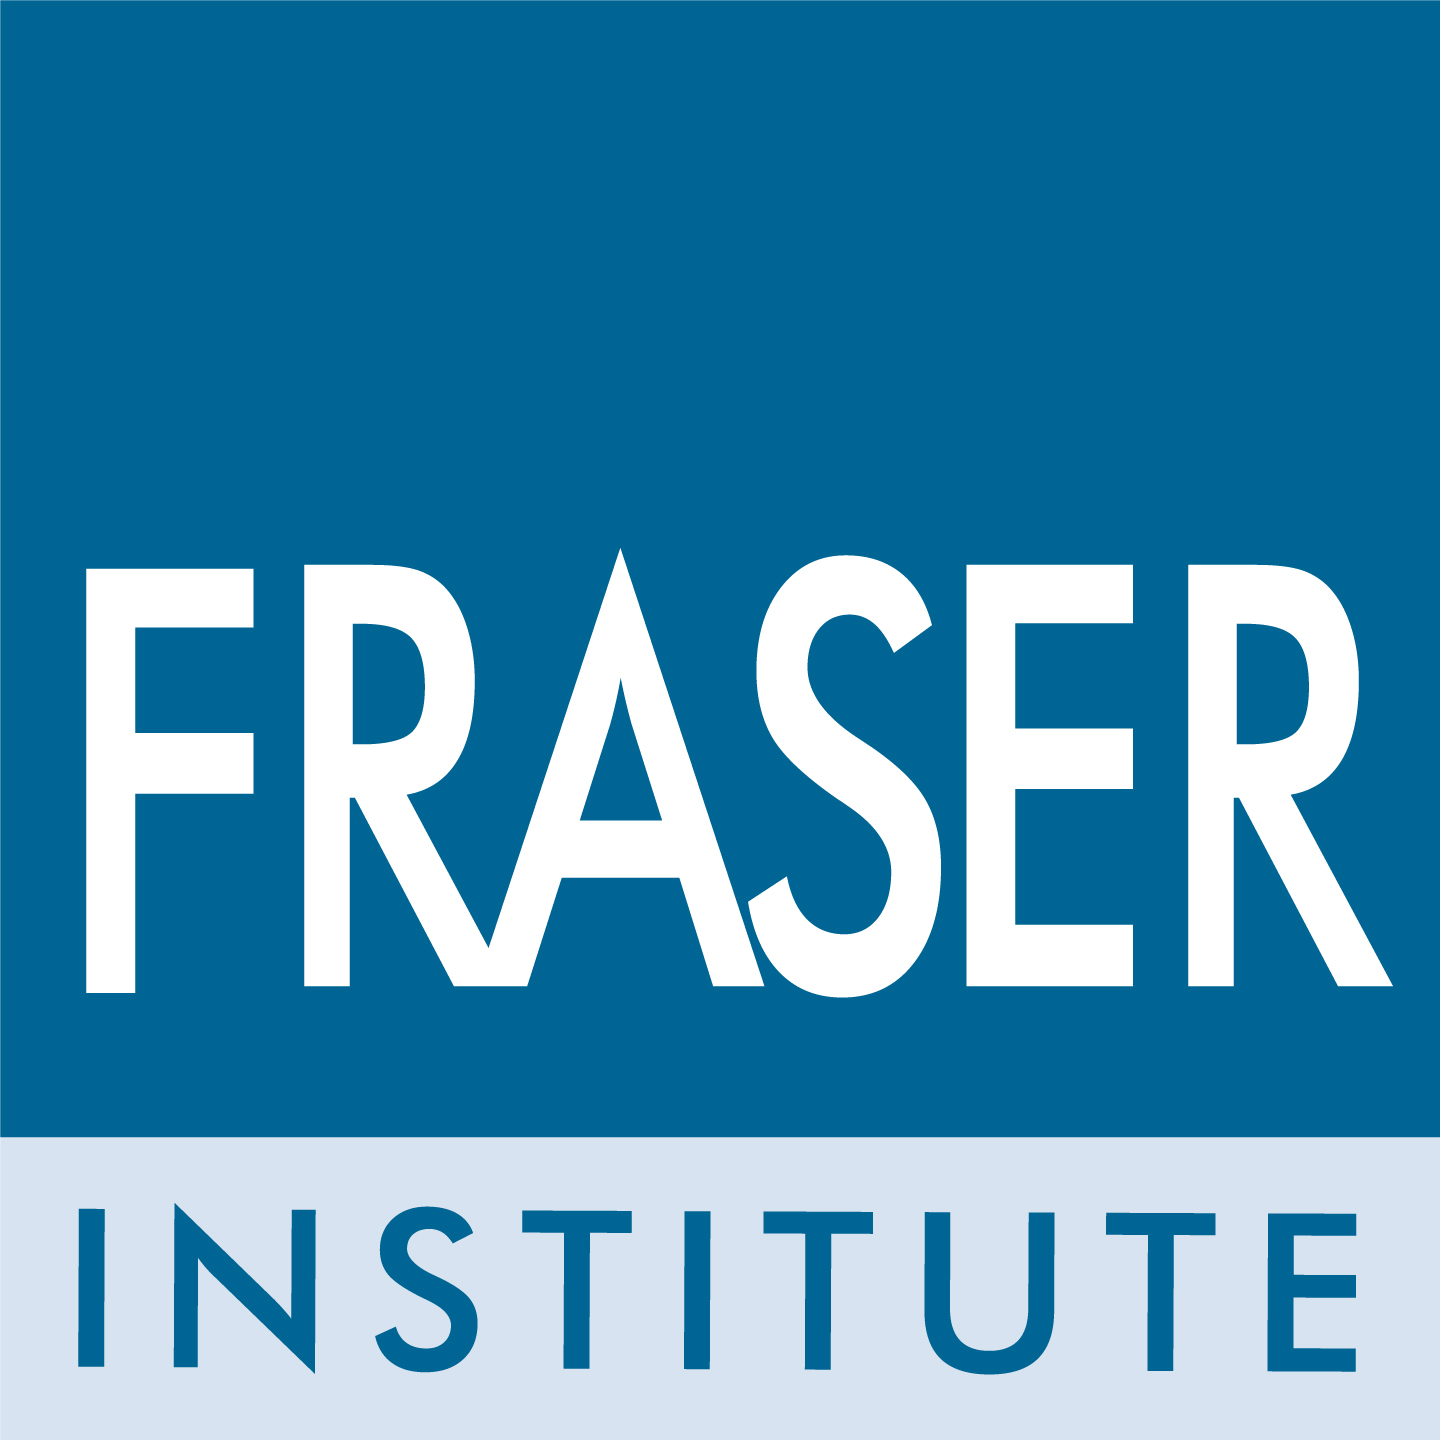 Fraser Institute News Release: Federal spending on benefits for families with children up more than 68% since 2014/15, financed entirely by deficits